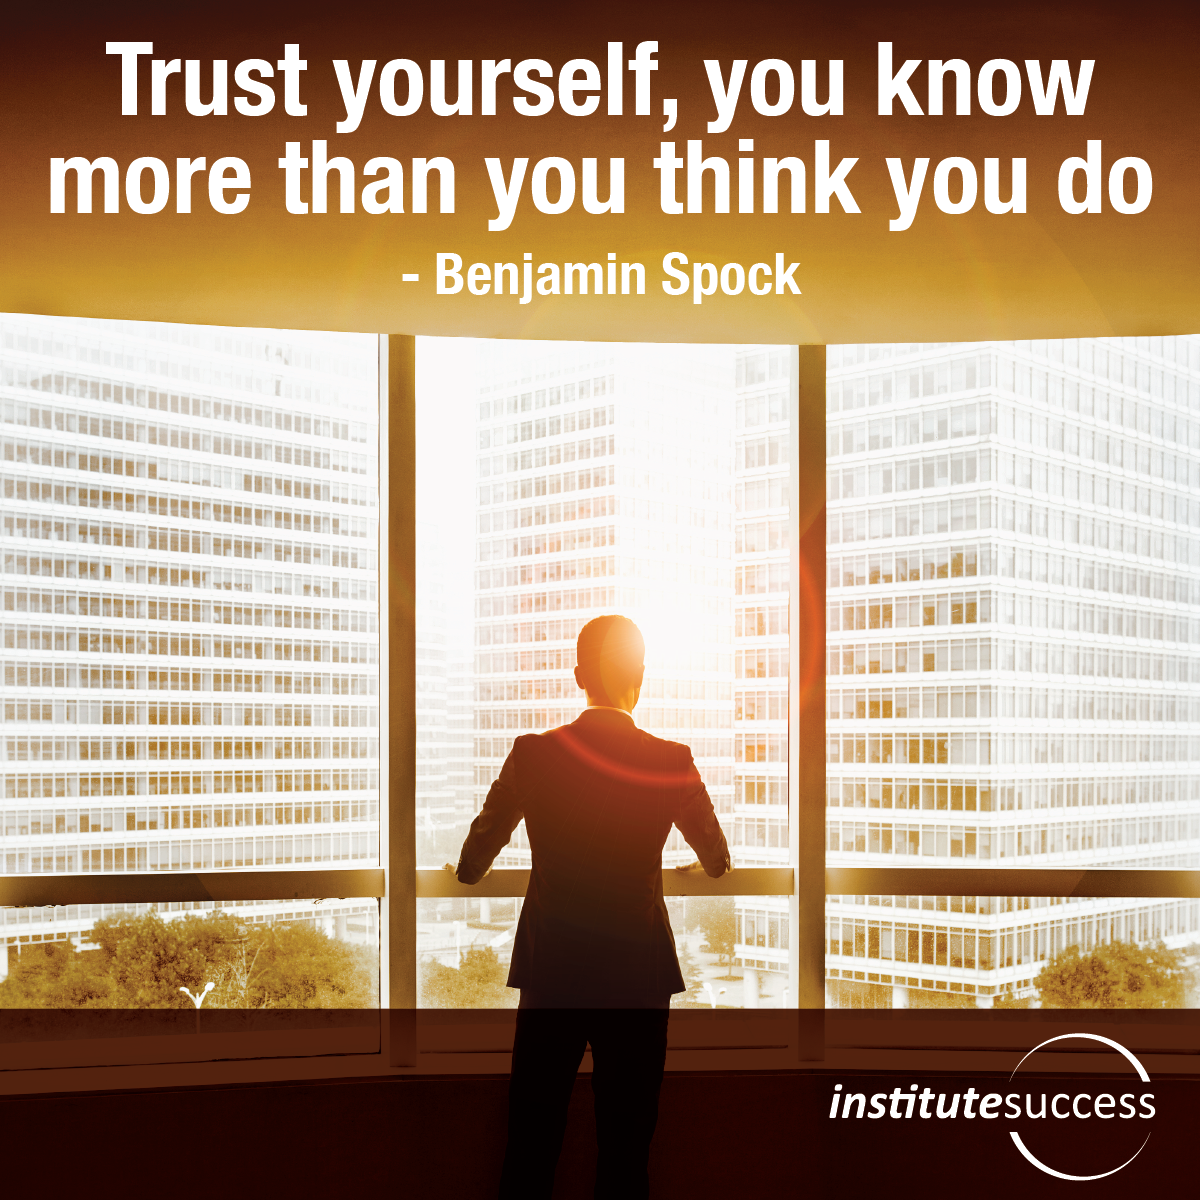 Trust yourself, you know more than you think you do – Benjamin Spock